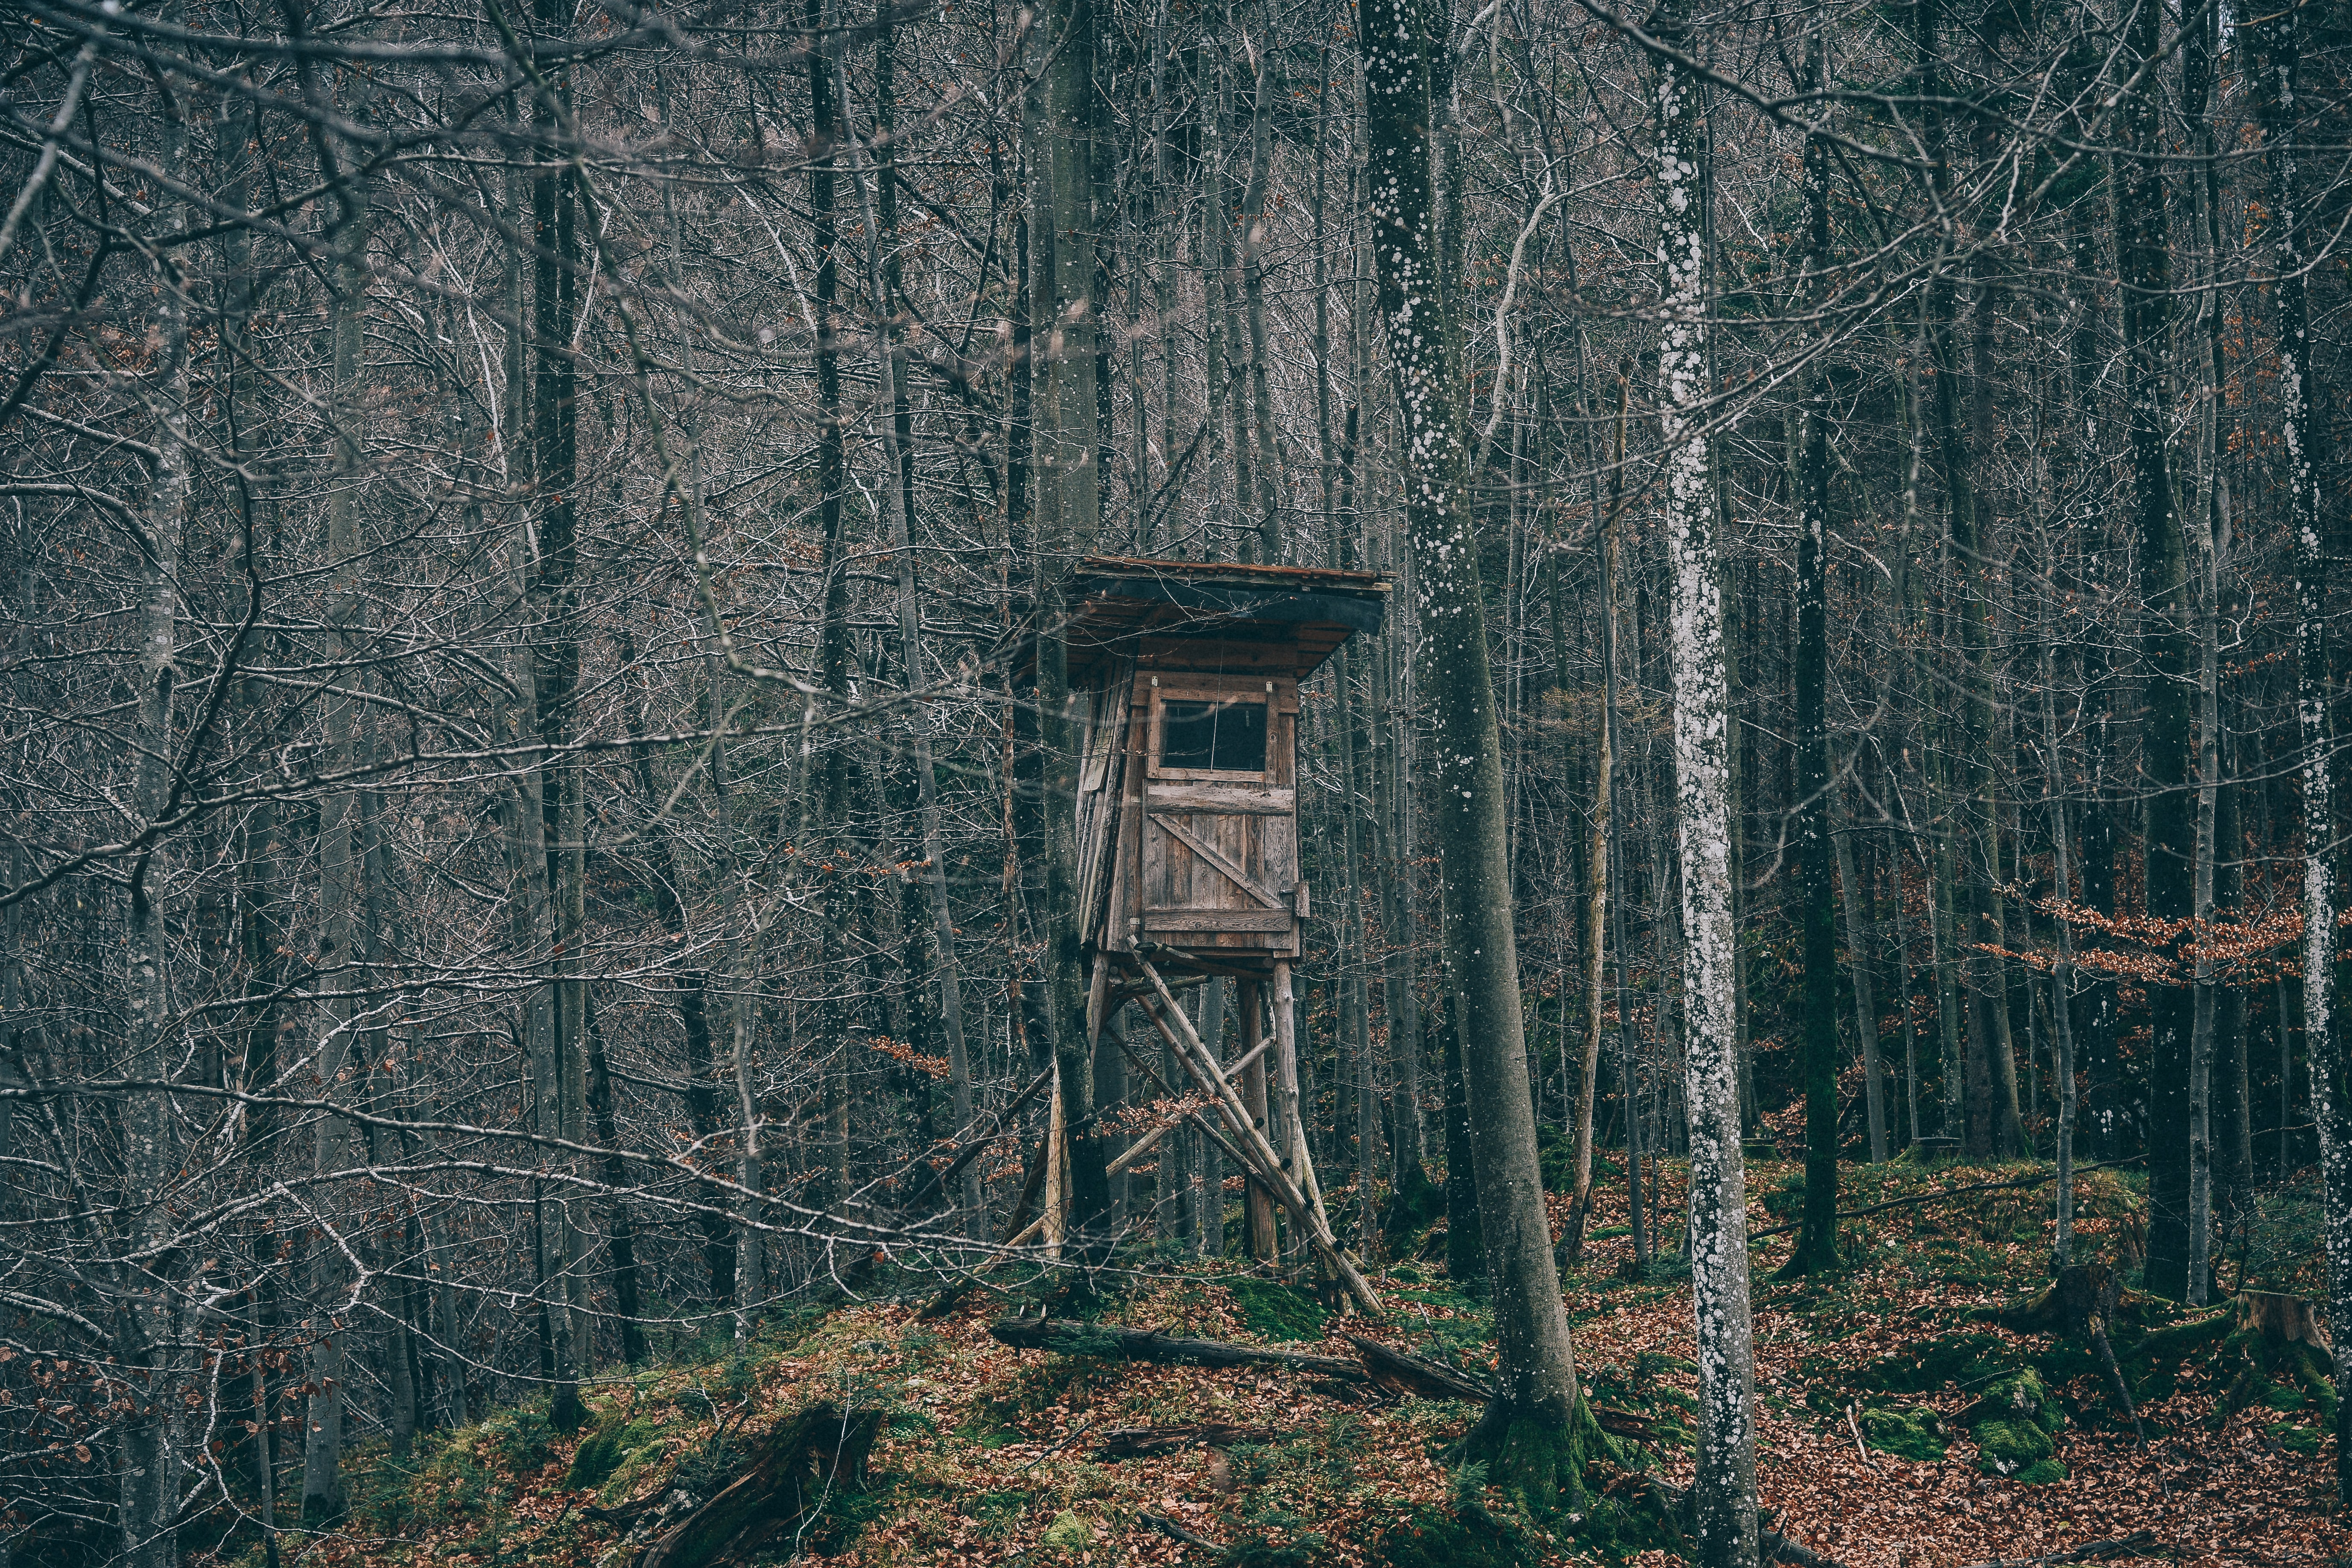 tree house in the middle of the woods